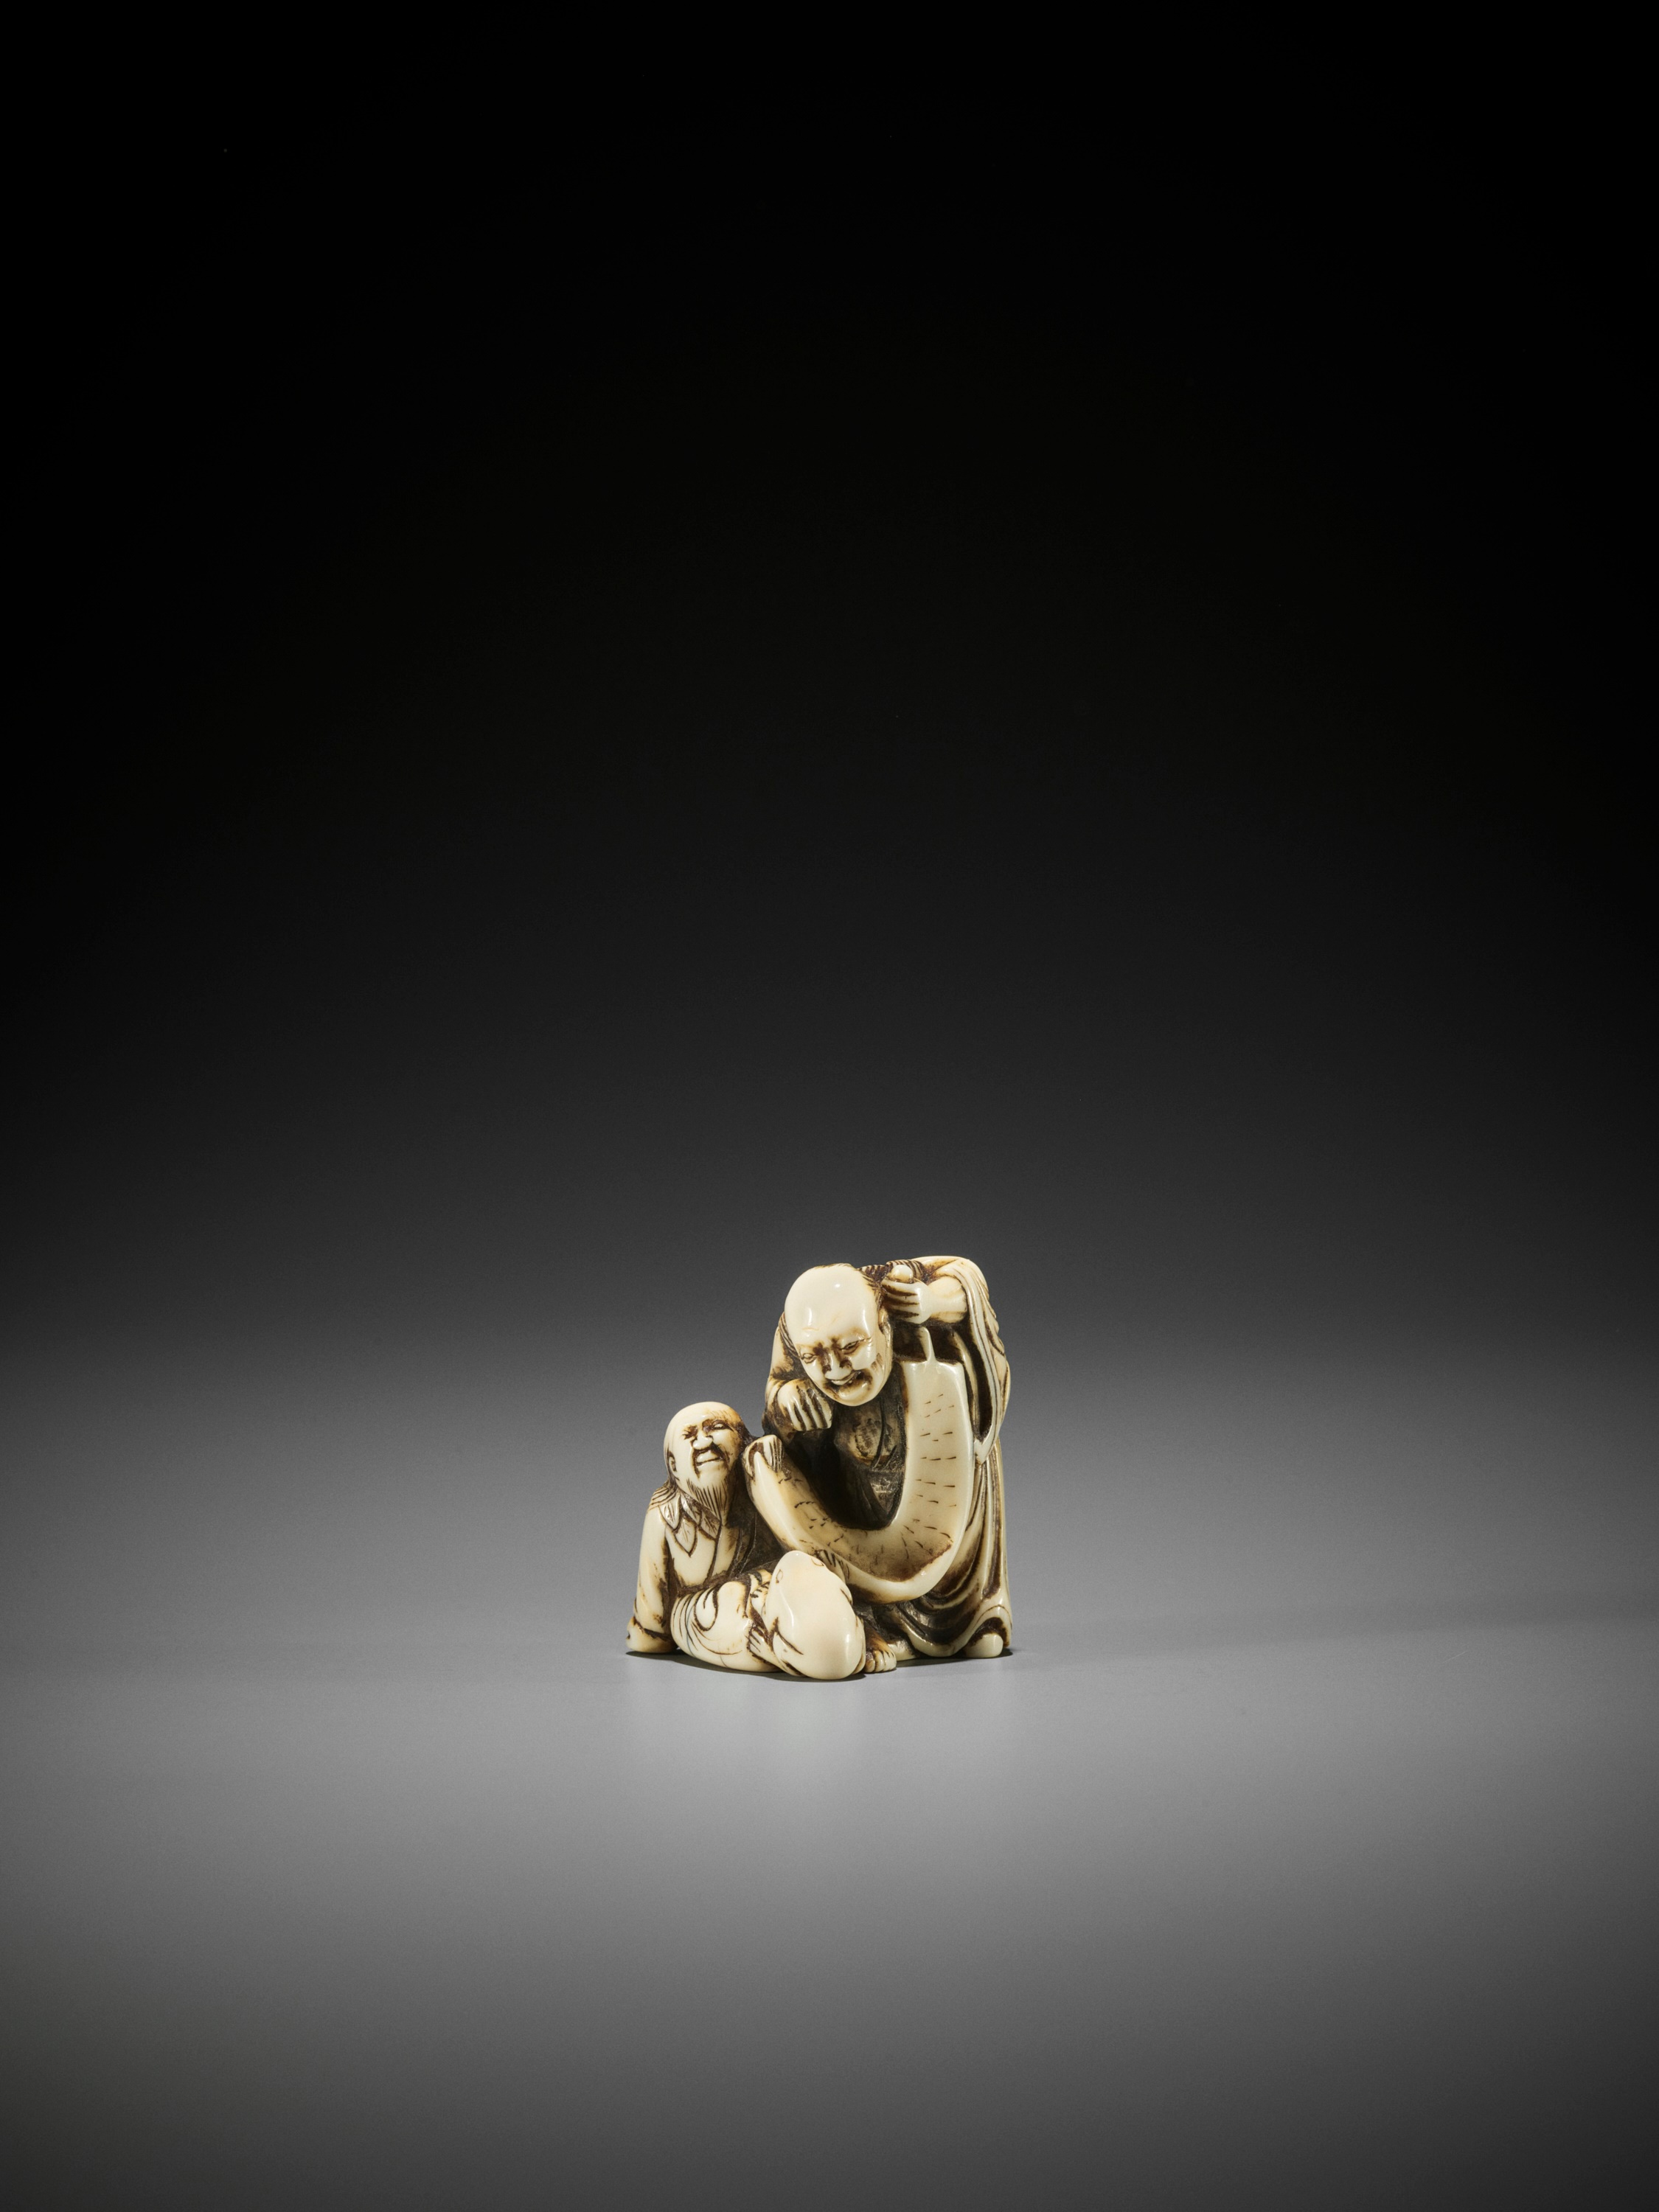 AN EARLY IVORY NETSUKE OF TWO IMMORTALS WITH SCROLL AND TOAD - Image 3 of 3